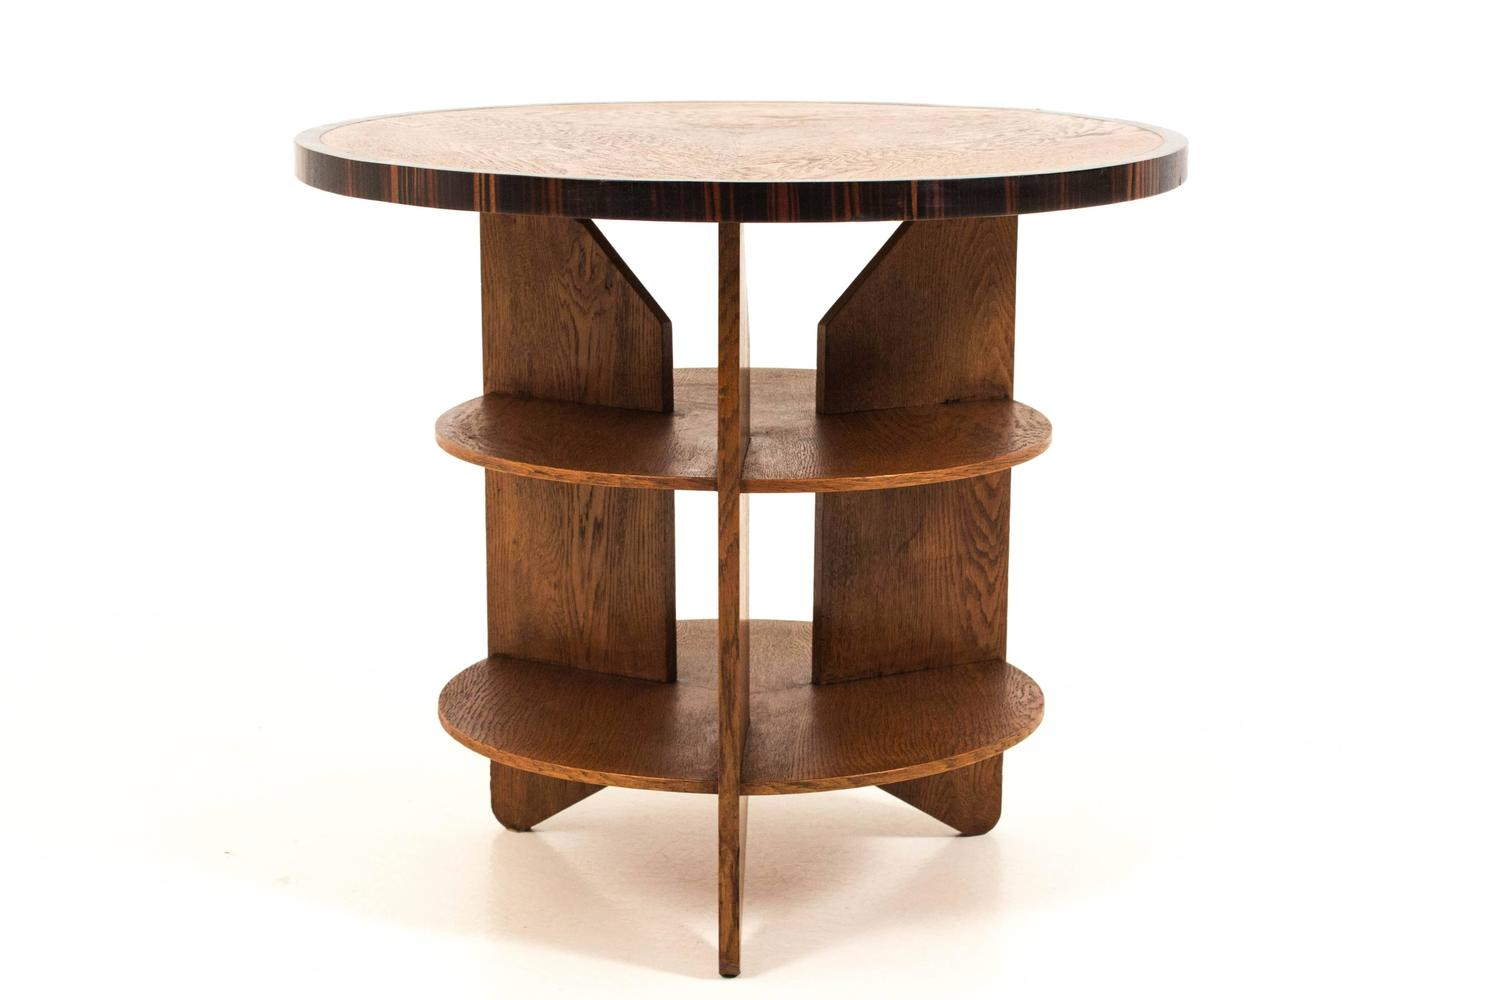 Funky art deco haagse school coffee table by pel izeren for genneper molen for sale at 1stdibs Funky coffee table